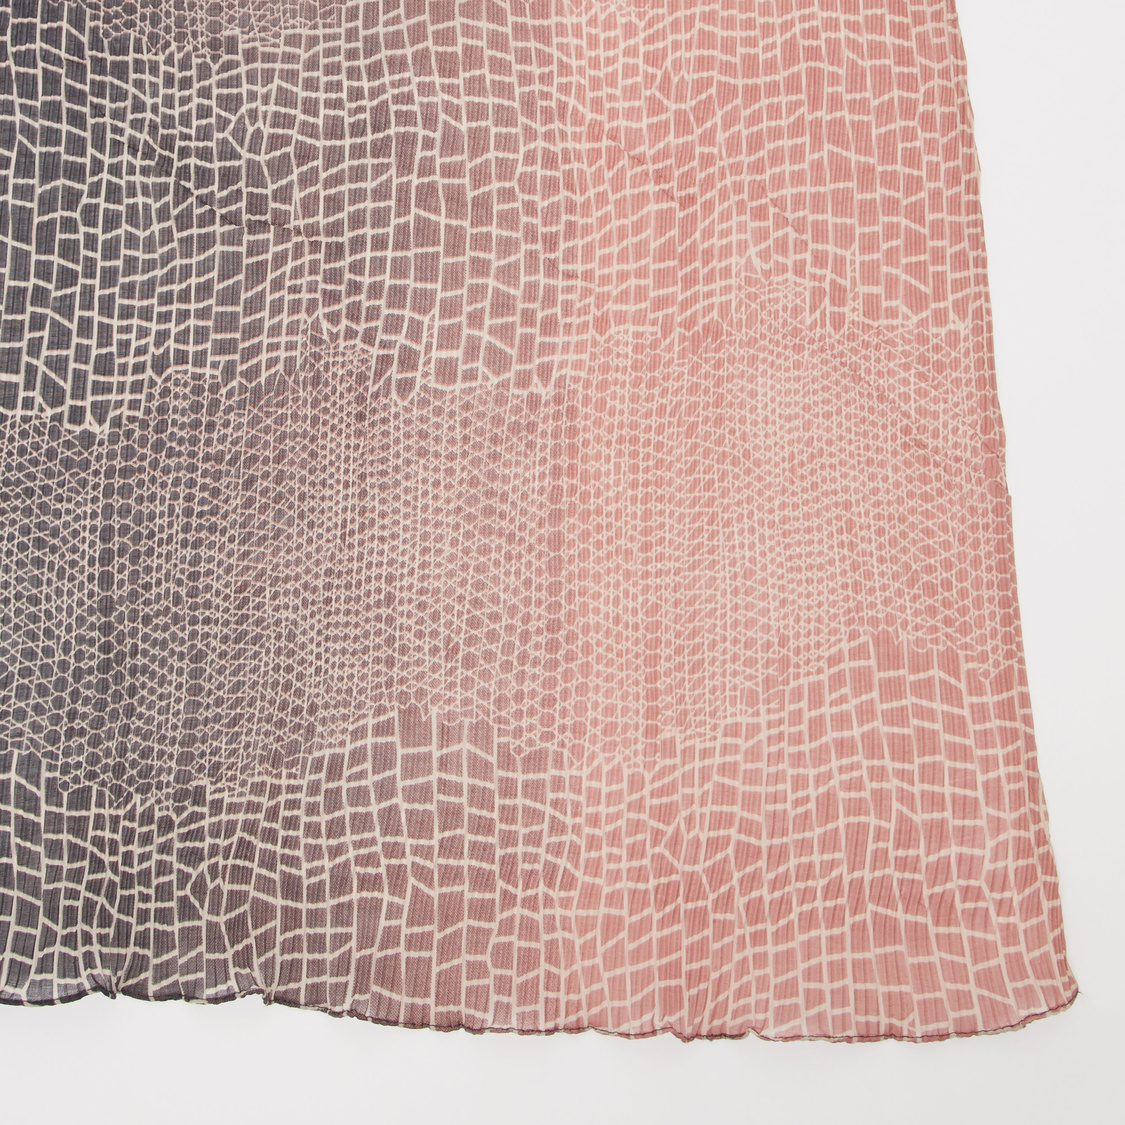 Geometric Print Scarf with Wrinkled Finish